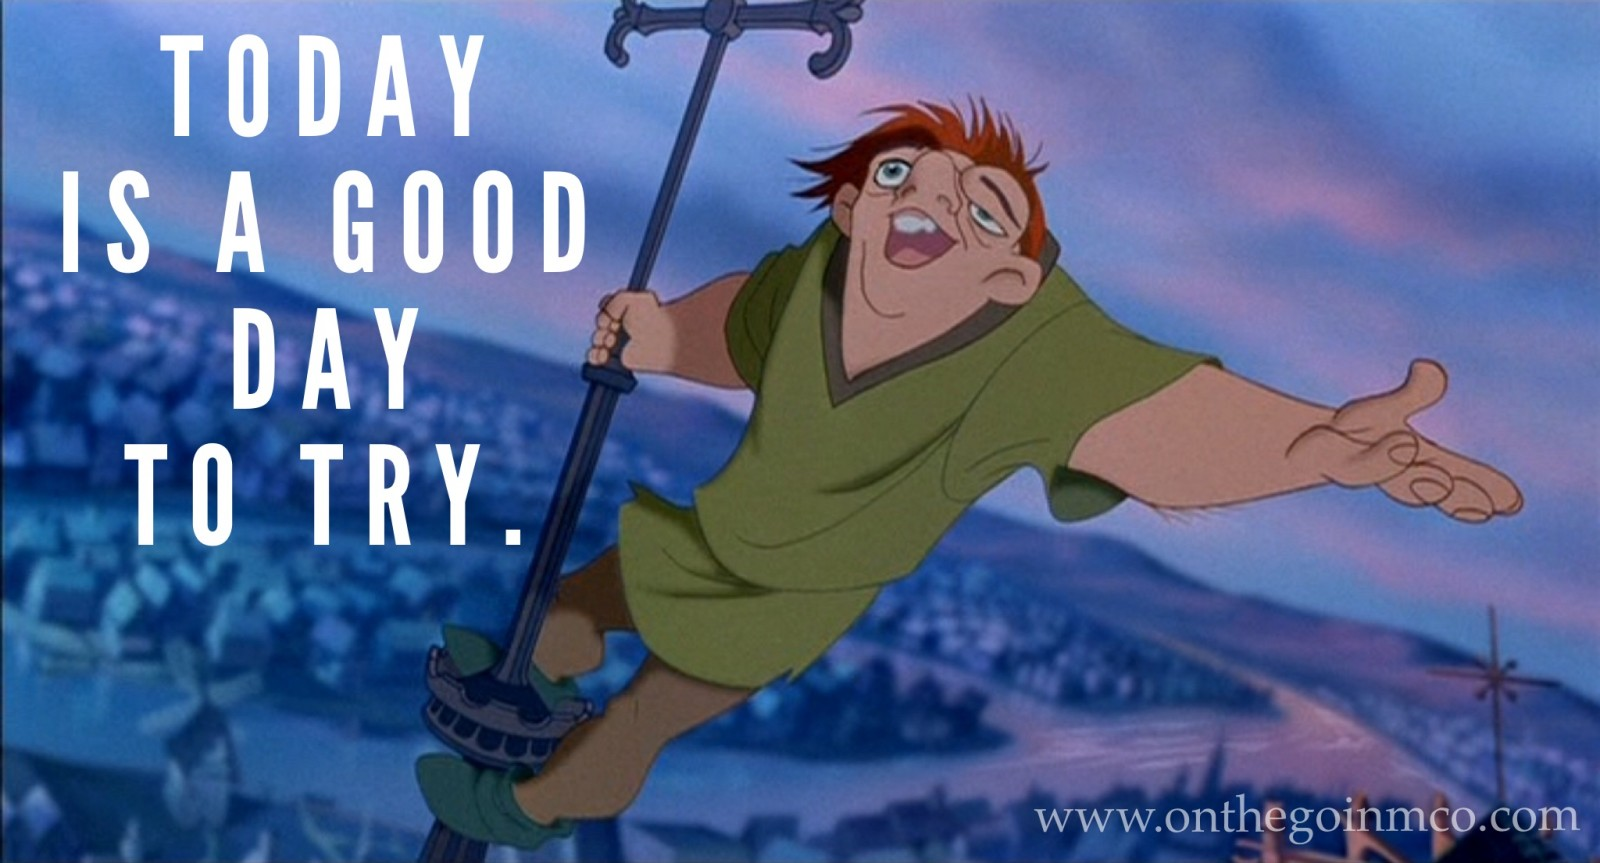 Disney Movie Quotes After a long week Quasimodo The Hunchback of Notre Dame